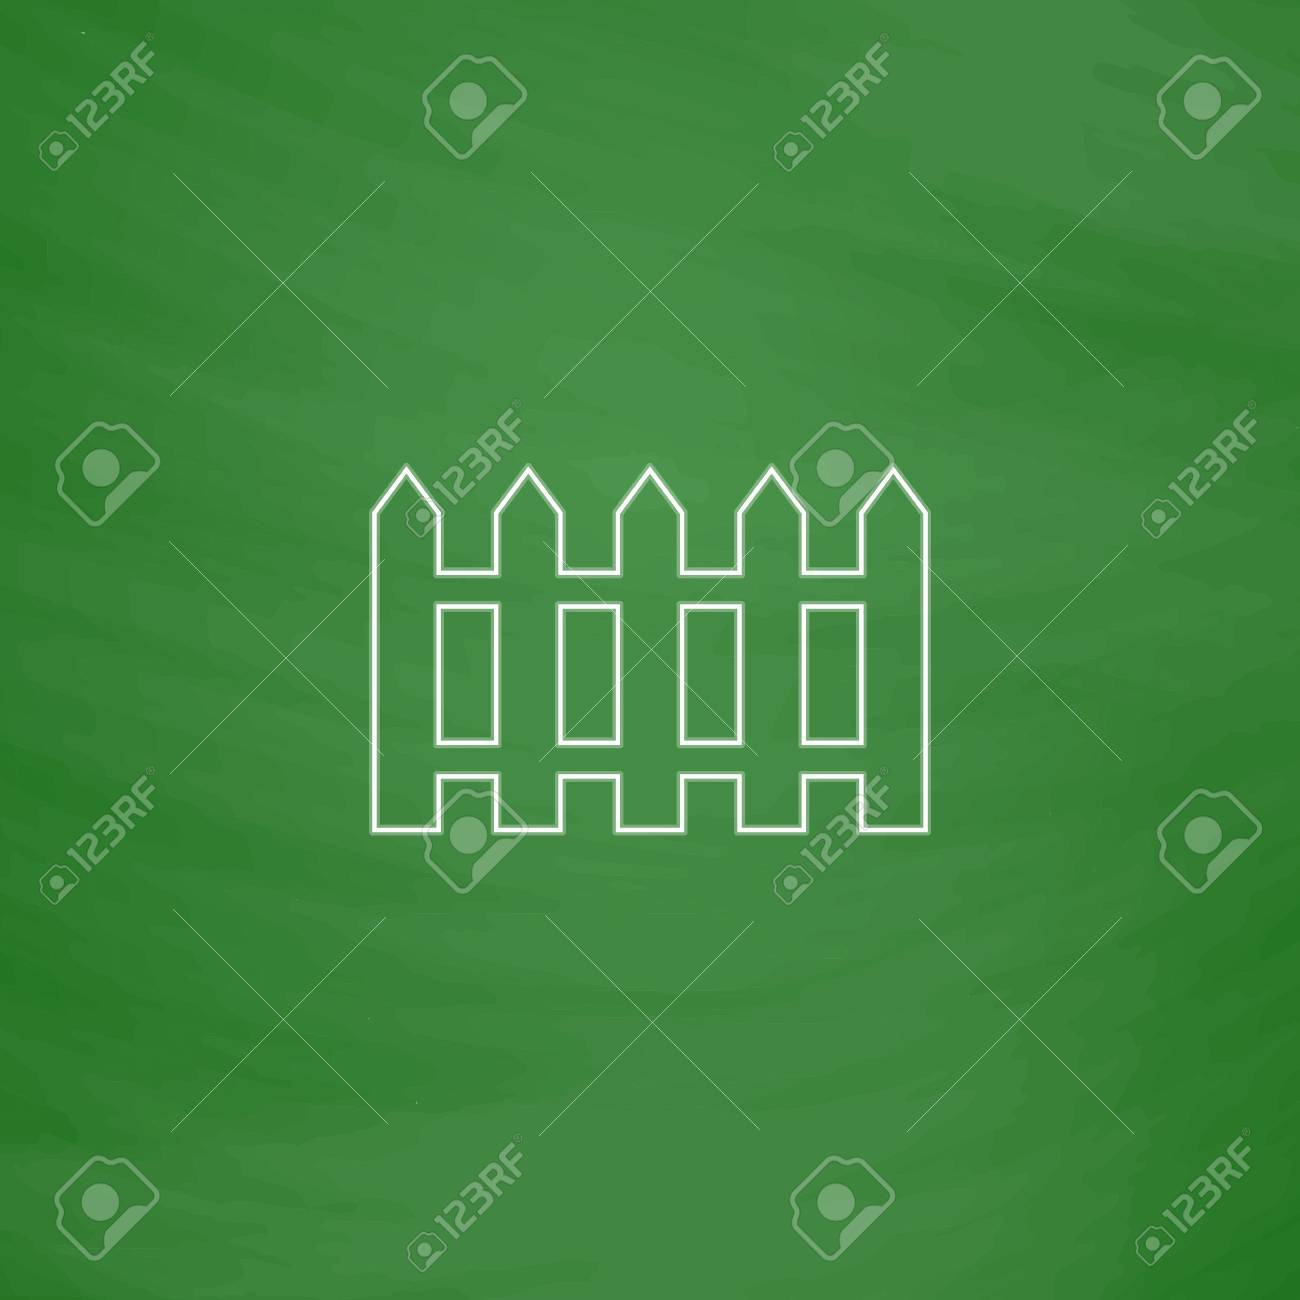 Sch Outline   Fence Outline Vector Icon Imitation Draw With White Chalk On